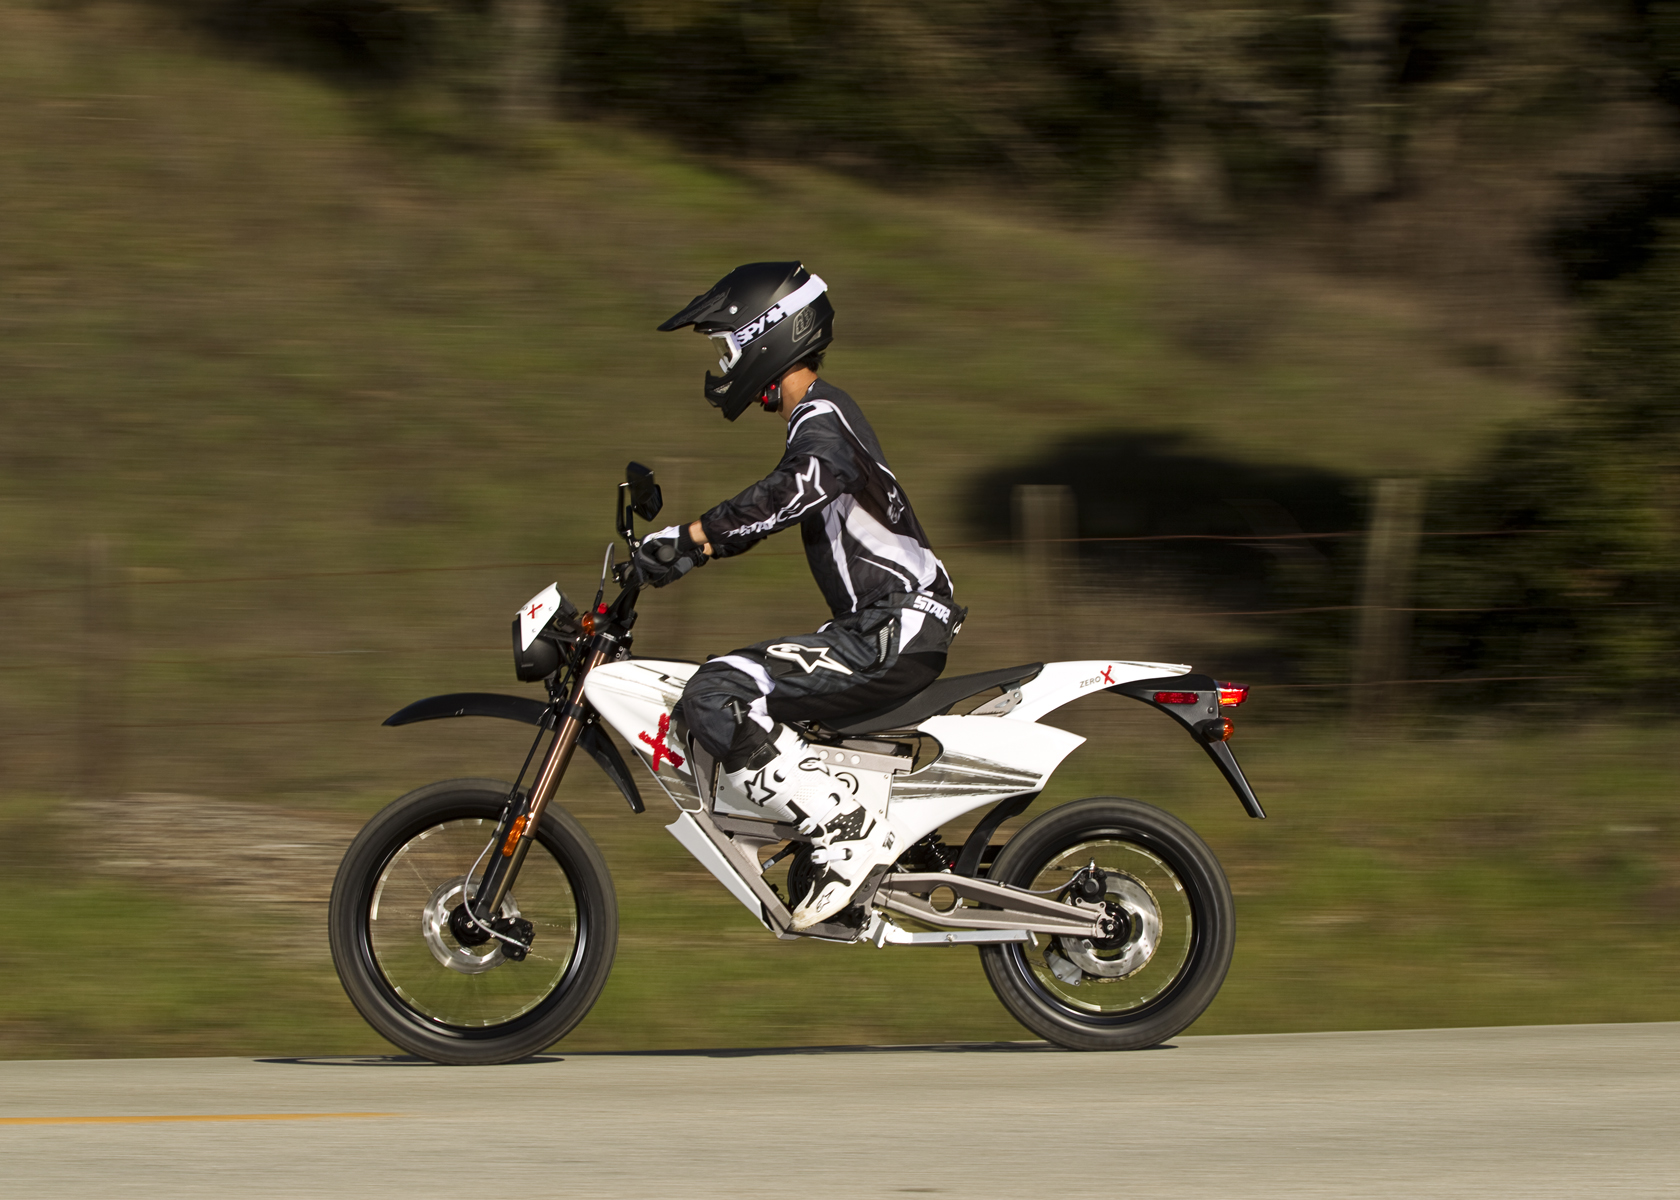 '.2011 Zero X Electric Motorcycle: Cruising on the Highway.'